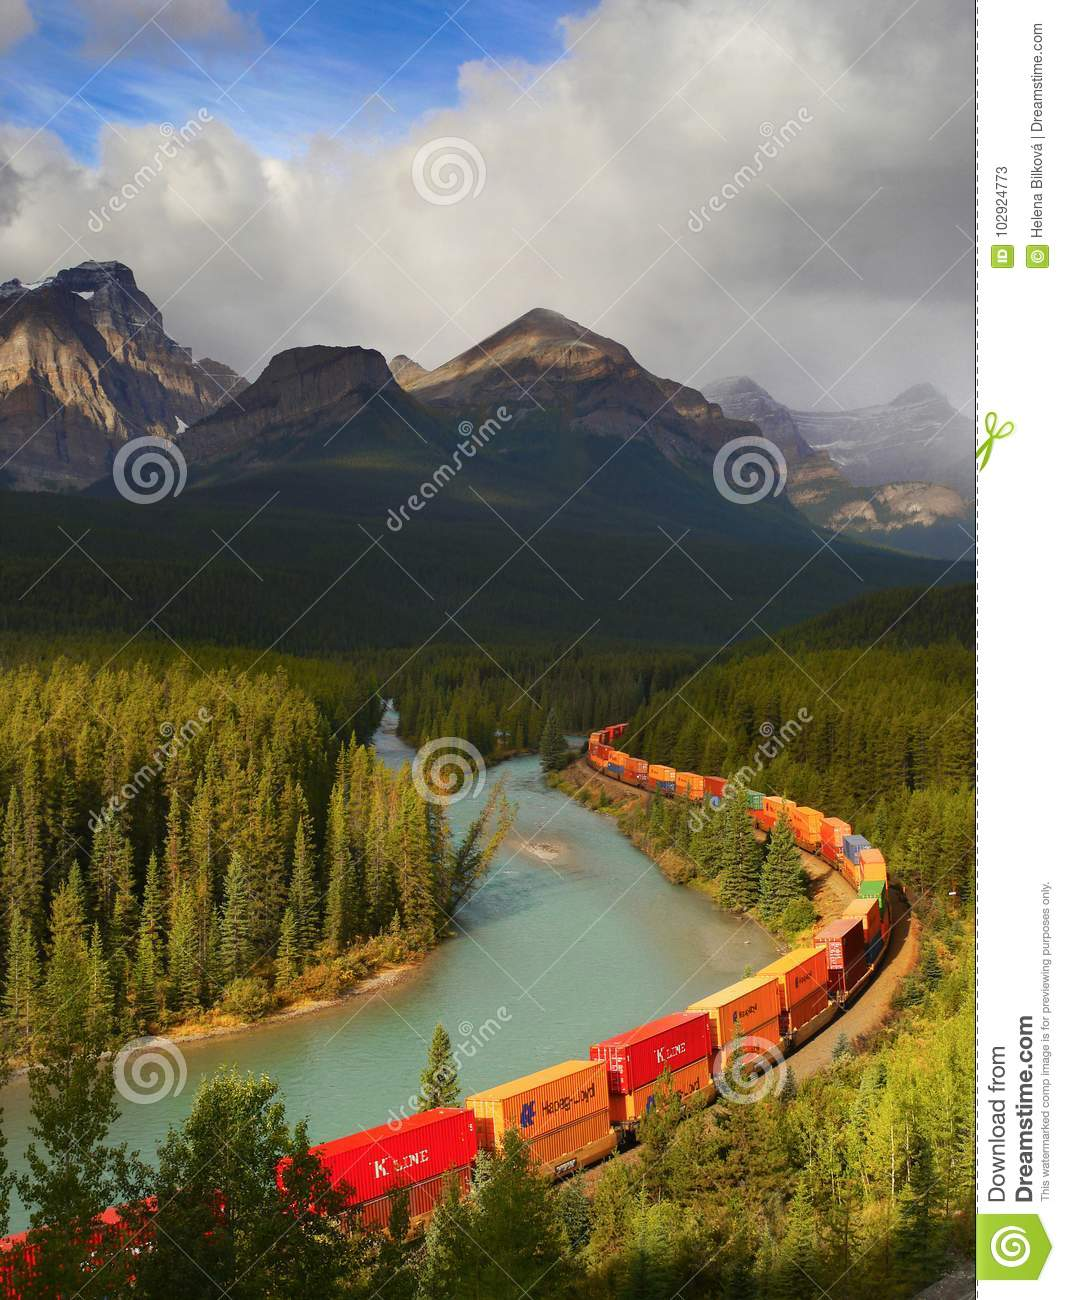 Train Moving in Mountains